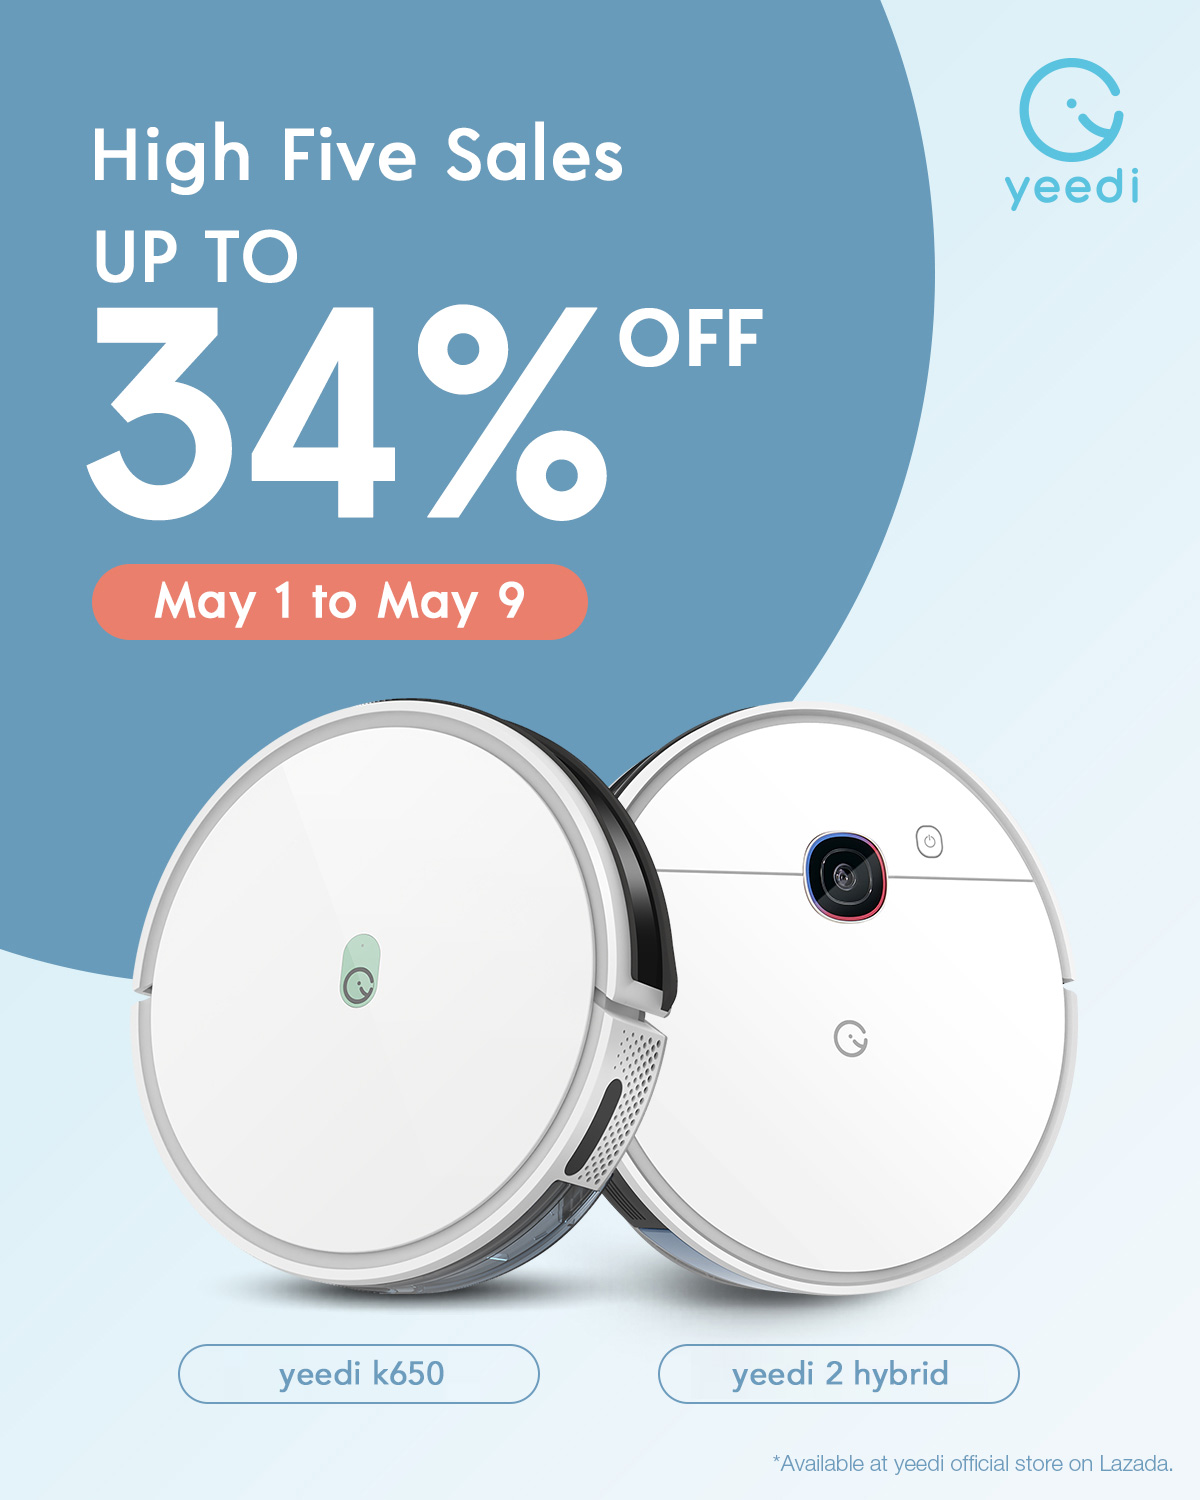 yeedi Announces Their 2021 High Five Sales on Lazada with Blow-Out Discounts